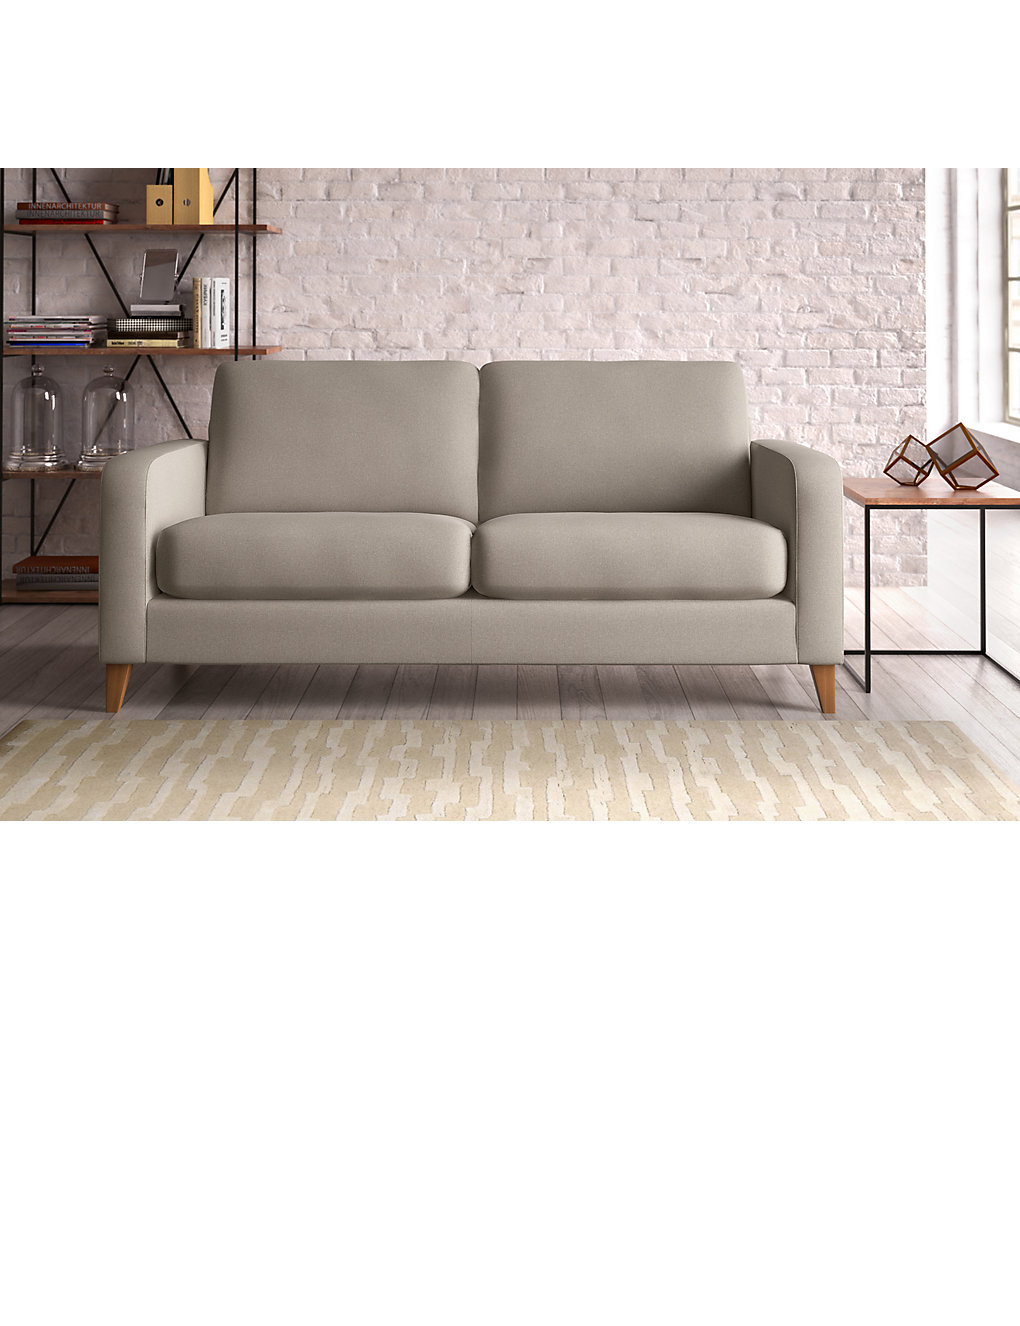 Marks and spencer sofa reviews sofa menzilperde net Tromso corner sofa bed review